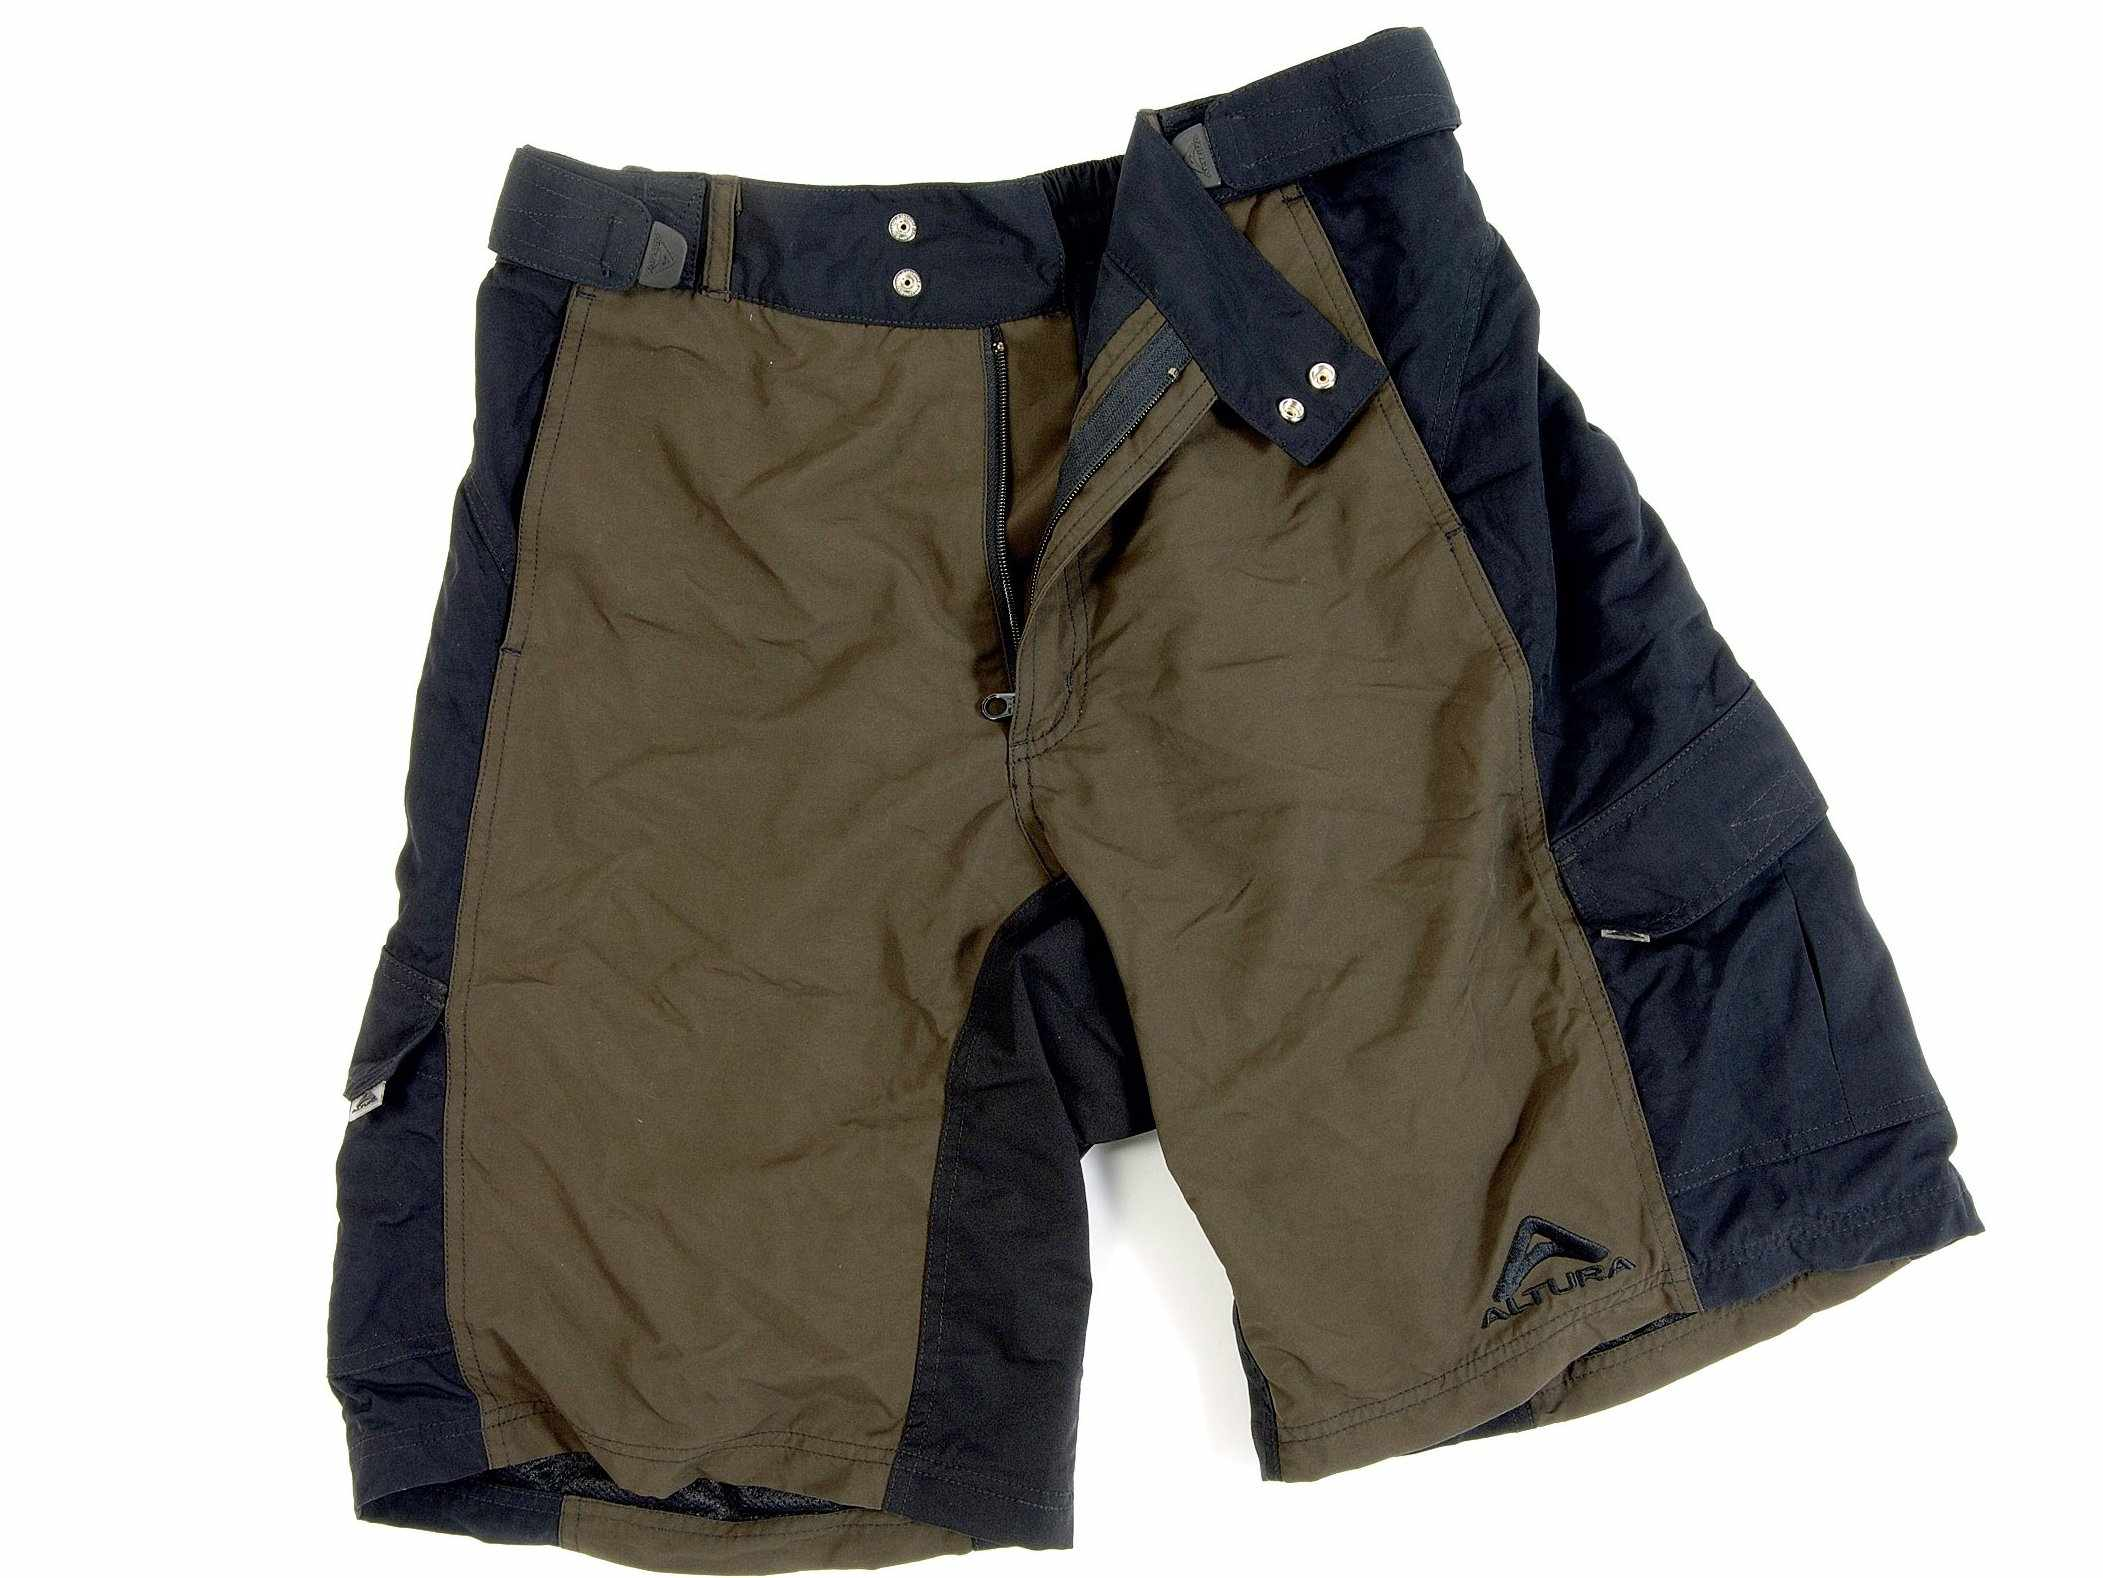 The Altura Altitude shorts are well-priced, well-designed baggies.